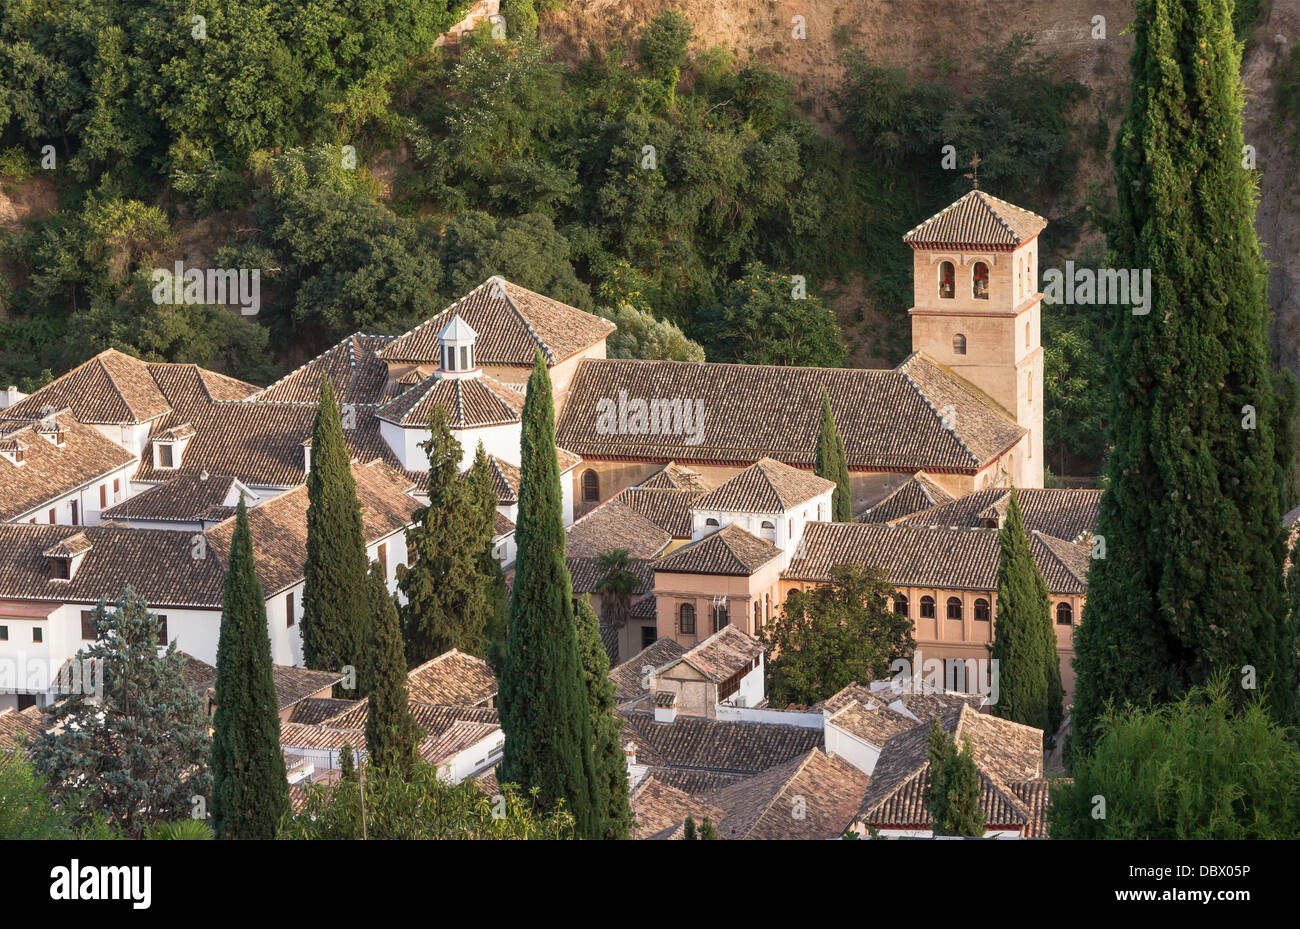 Roofs on the 'Carrera del Darro', among them, the roofs of church San Pedro y Pablo, Granada, Spain. - Stock Image